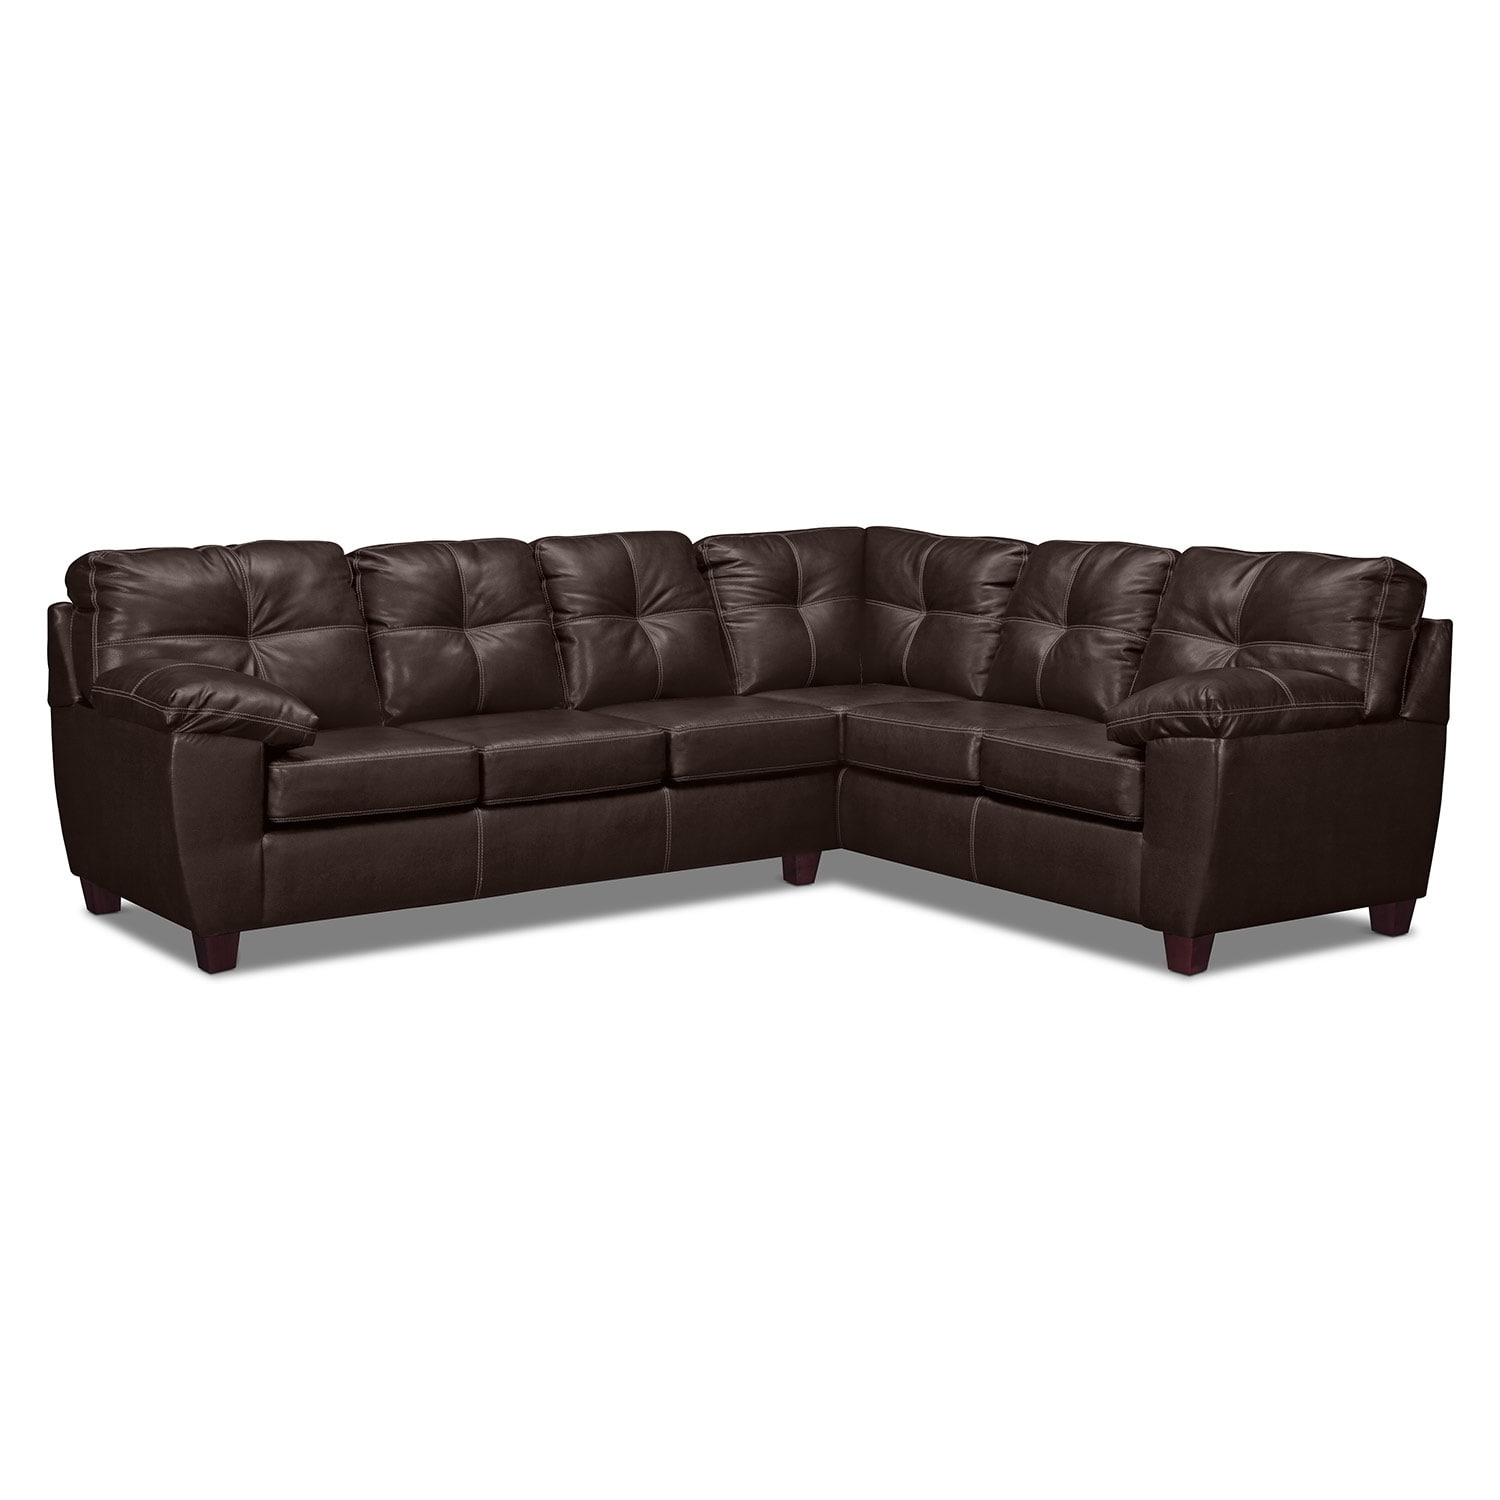 Living Room Furniture - Rialto Brown 2-Pc. Sectional with Right-Facing Corner Sofa